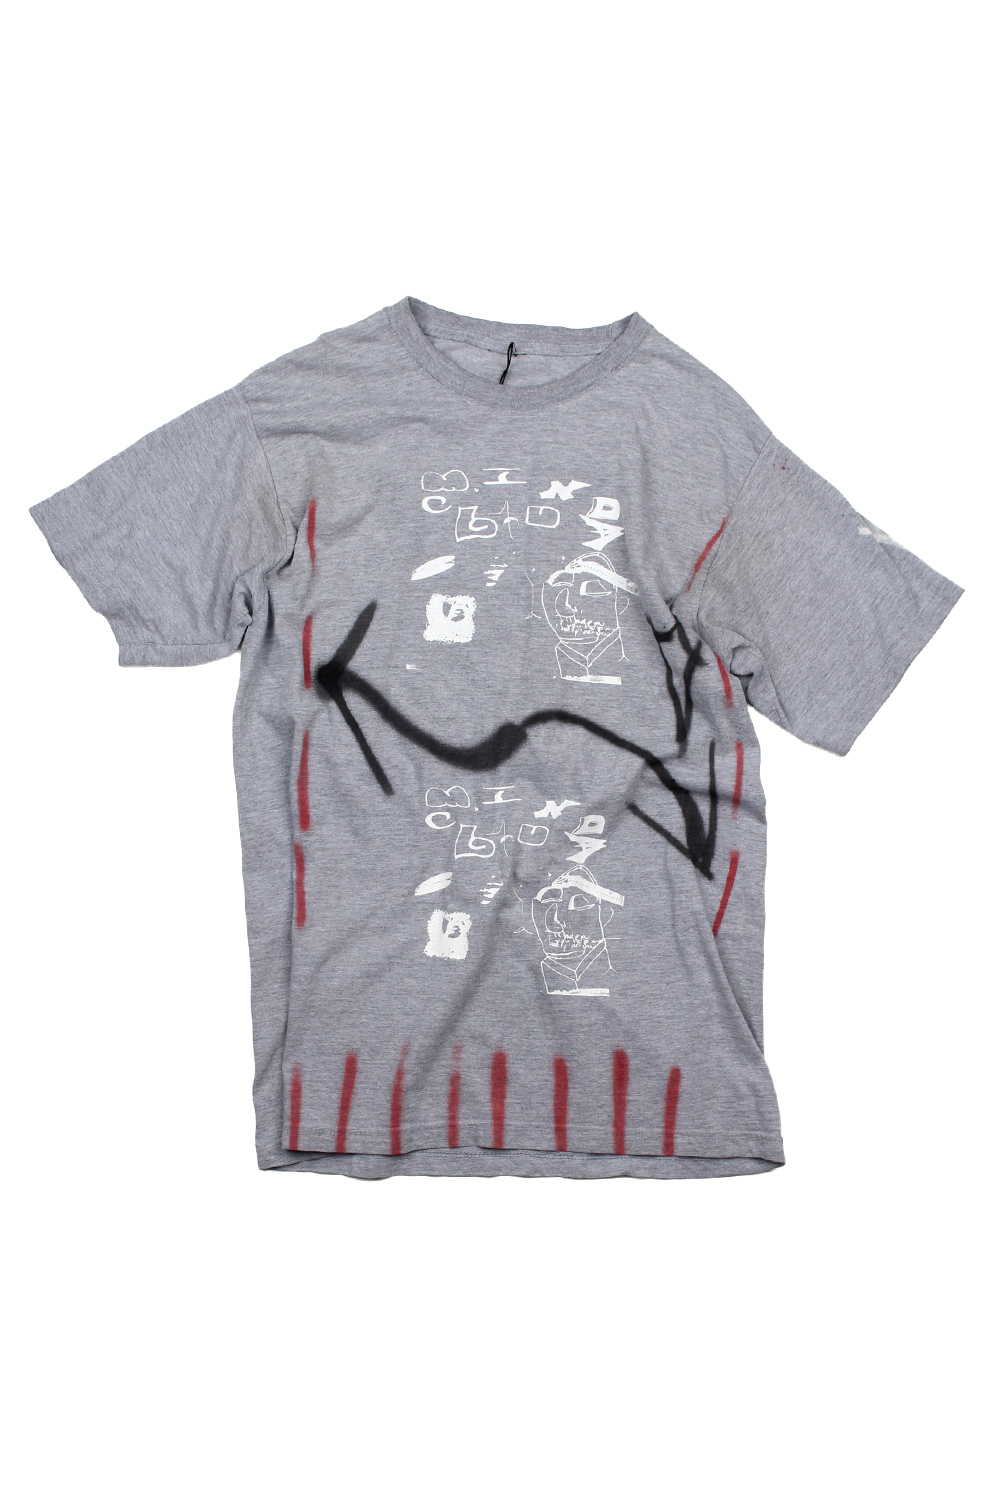 [MIND CLUB] MIND CLUB T-SHIRT grey